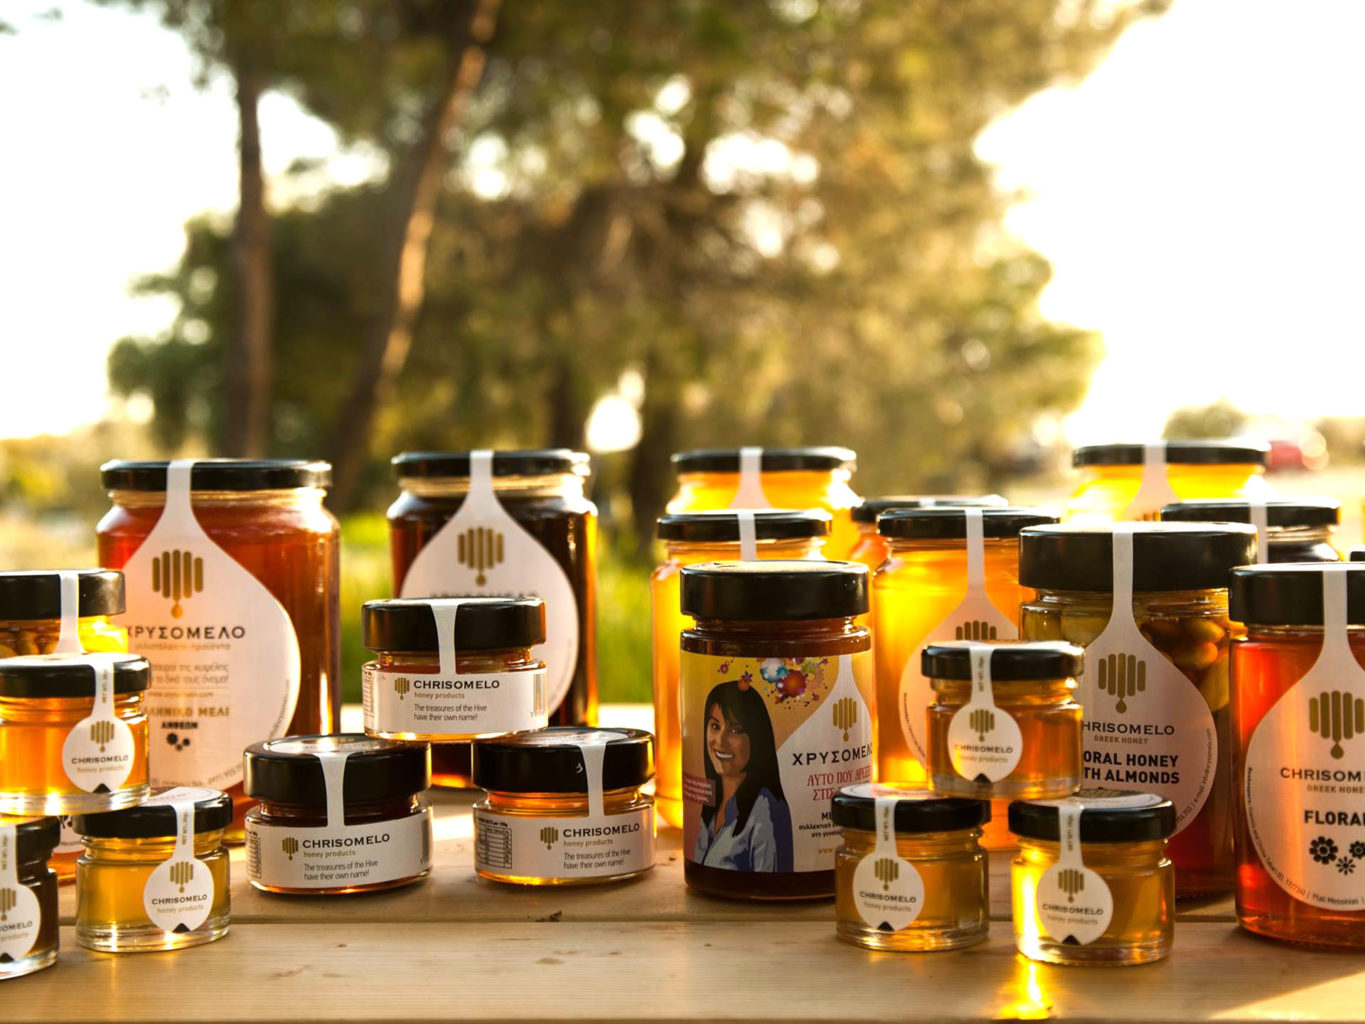 Chrisomelo honey labels packaging